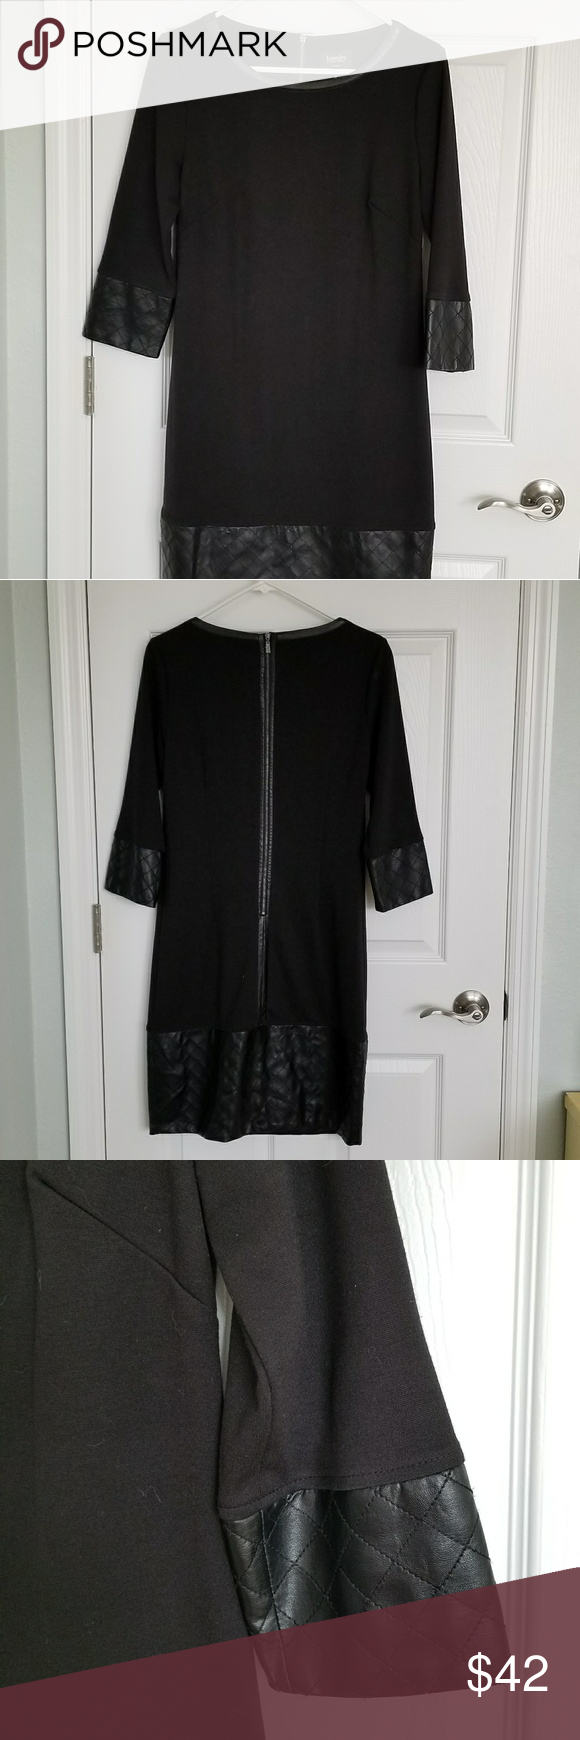 NEW Laundry Leather Trim Knit Dress Sz 6 Gorgeous new Laundry by Shelli Segal black knit dress w faux leather at cuff and hem. Size 6. Never worn. Brand new. Great winter dress! Laundry By Shelli Segal Dresses